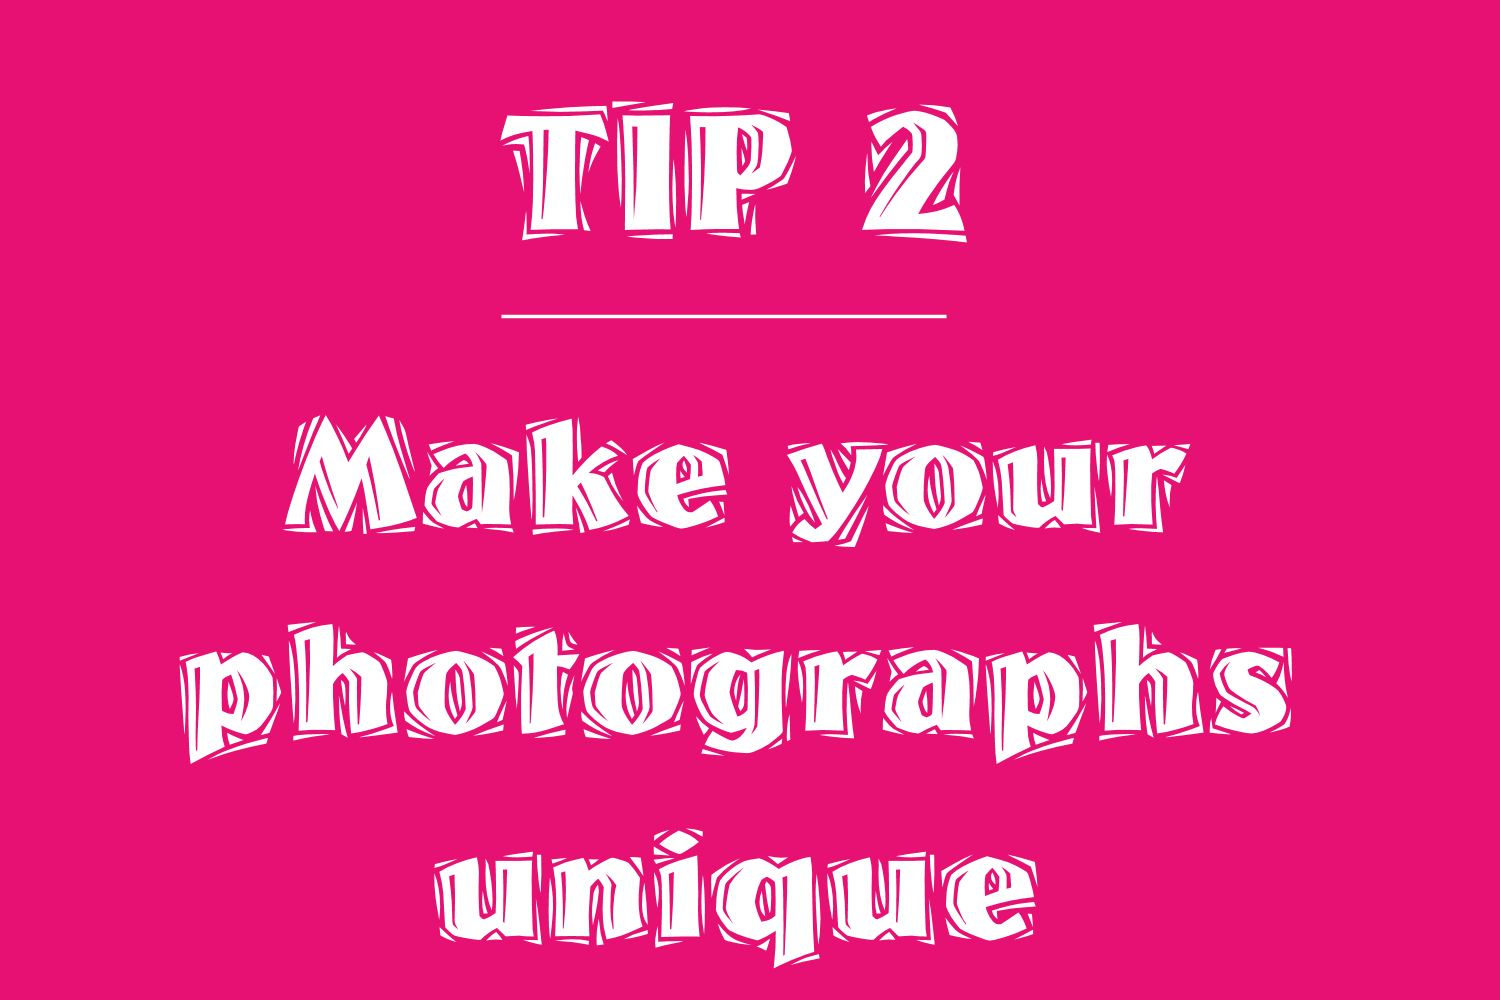 tip 2 - unique photos